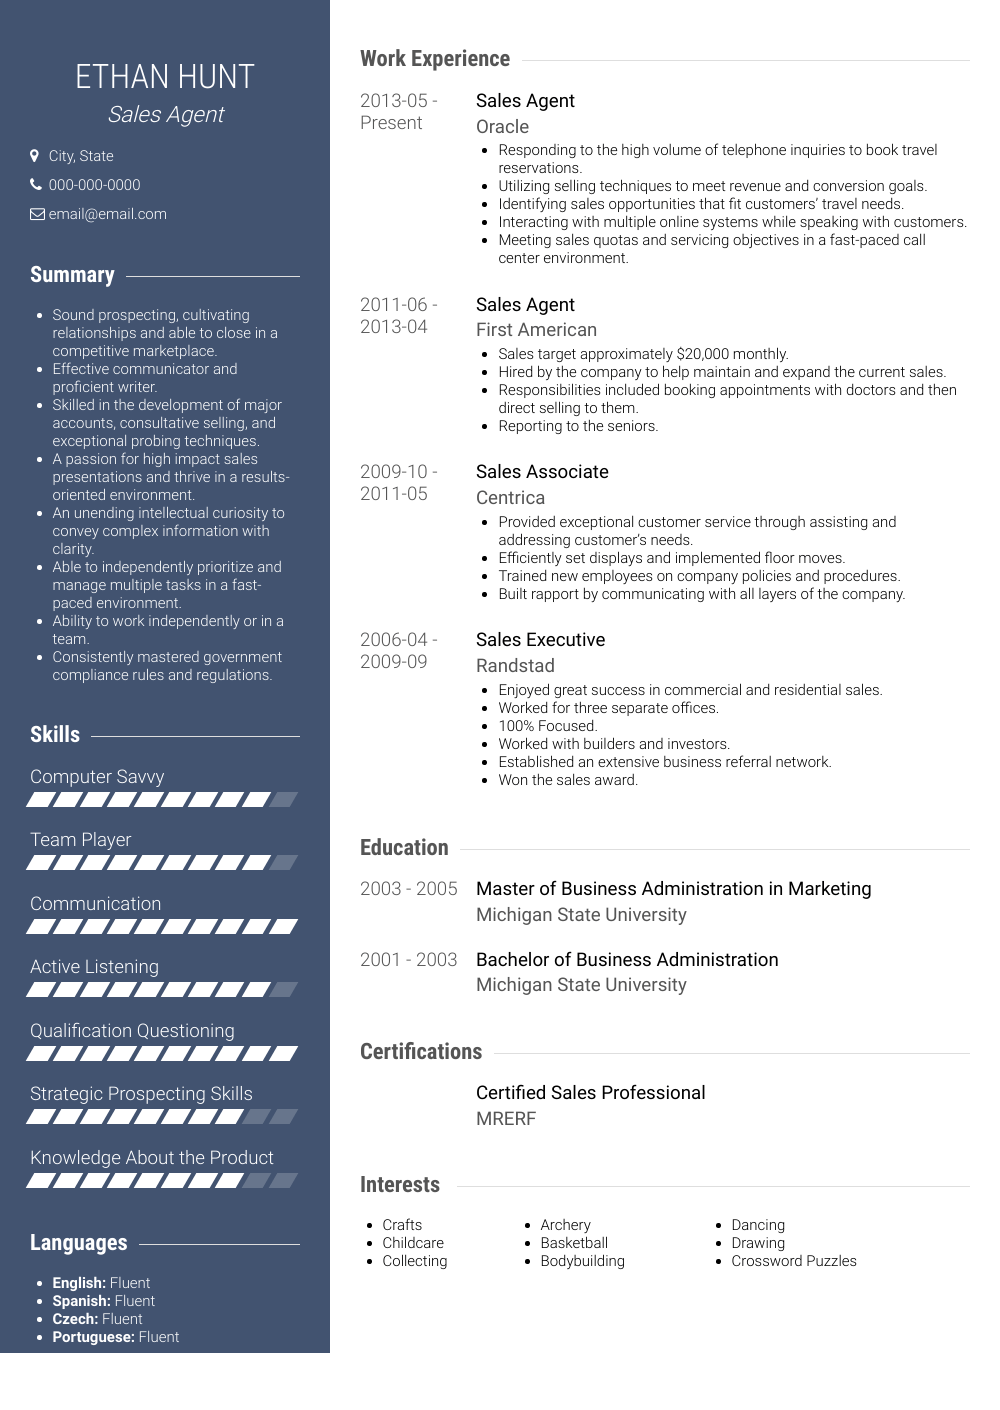 Sales Agent Resume Samples And Templates Visualcv